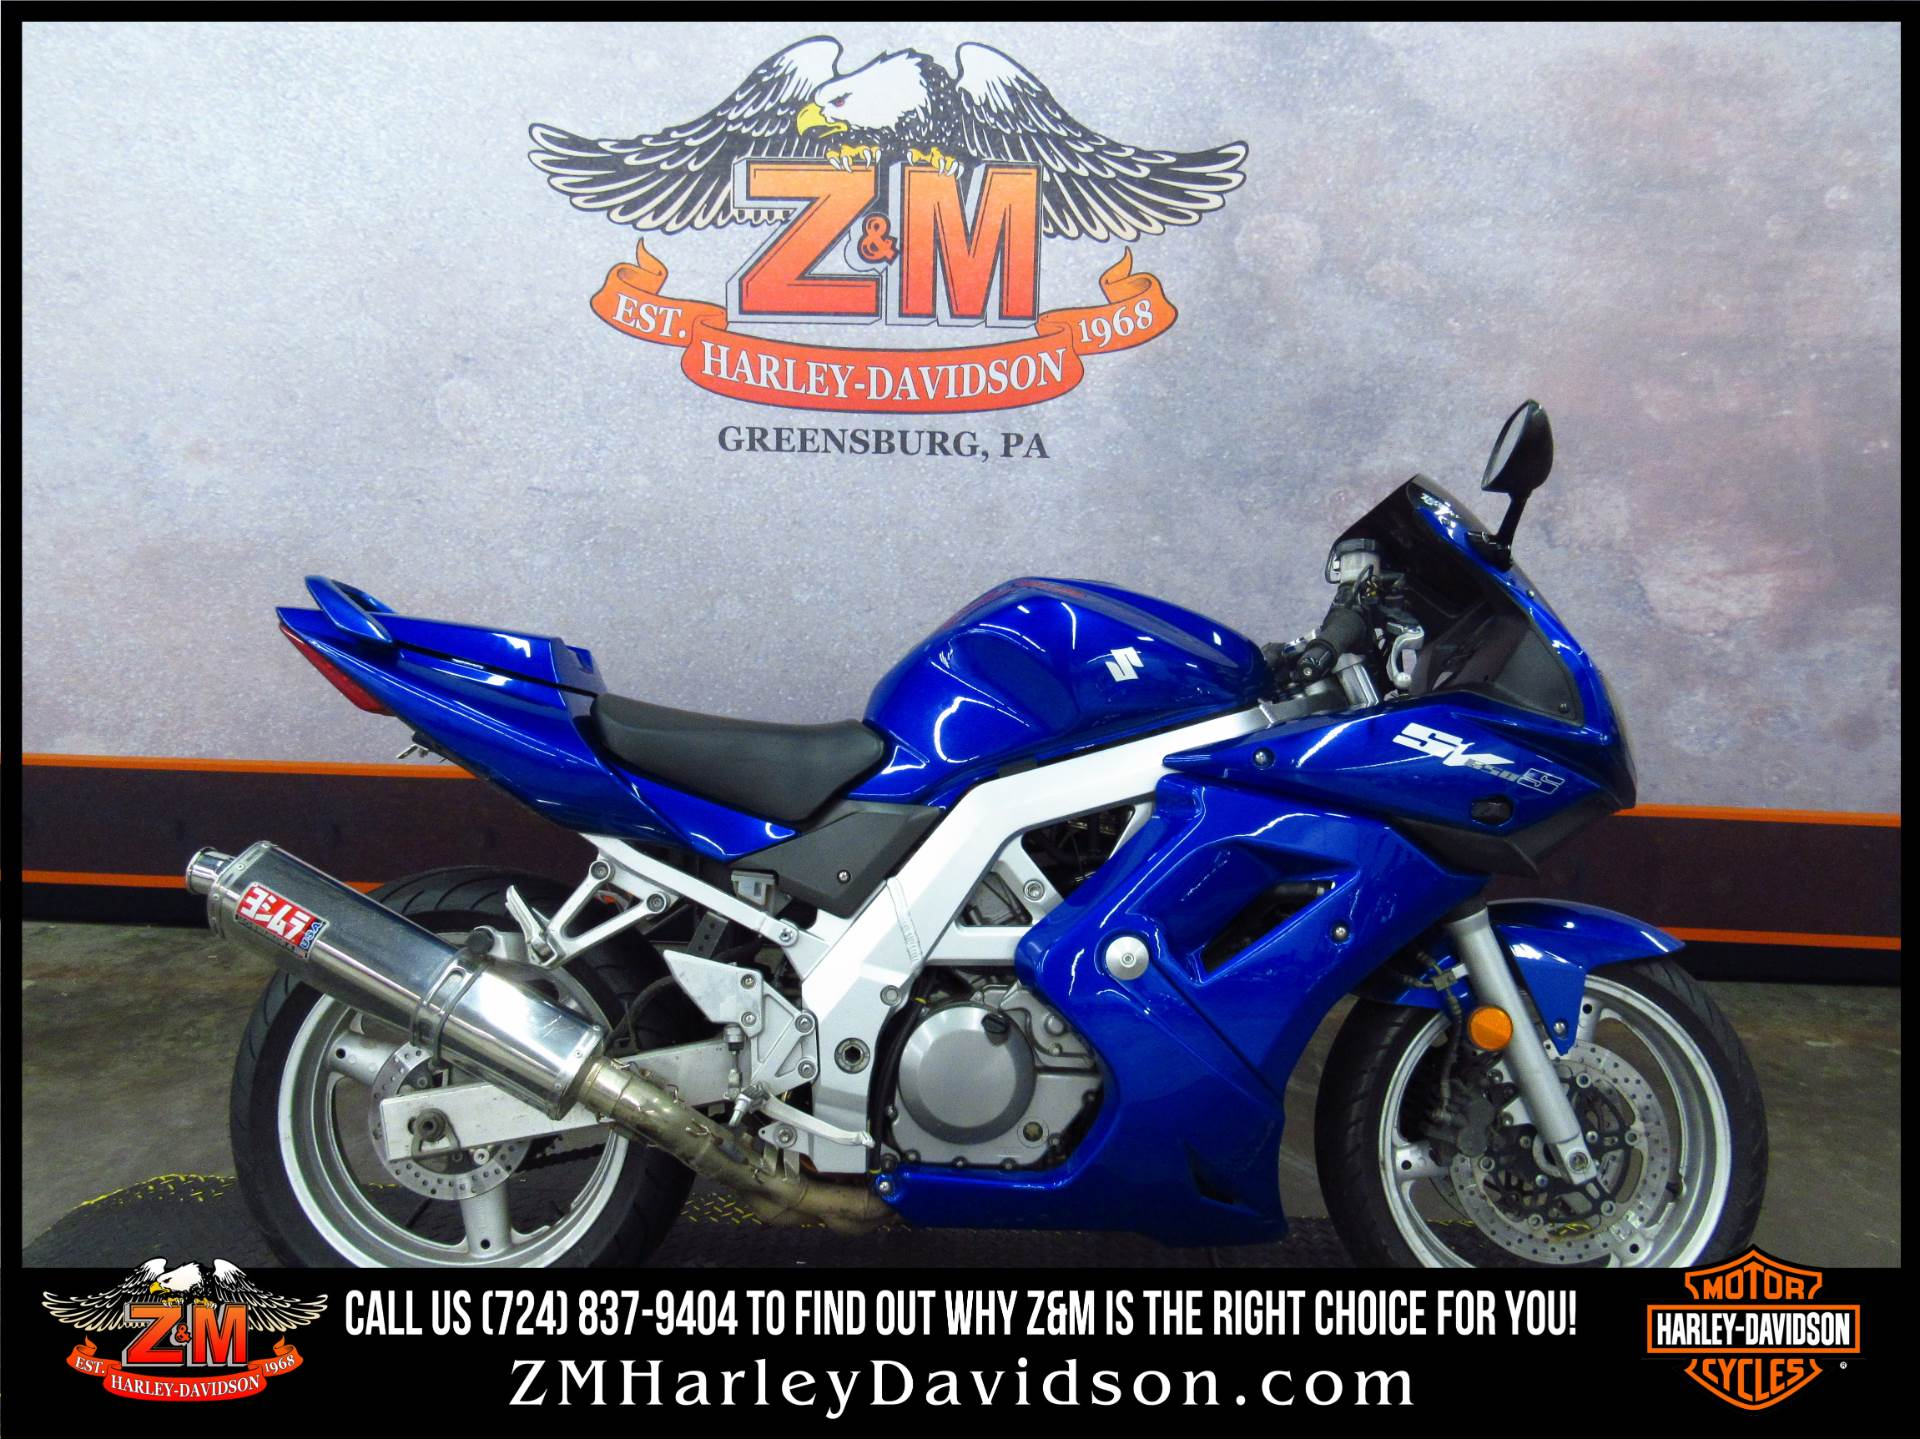 2004 Suzuki SV650S for sale 23668